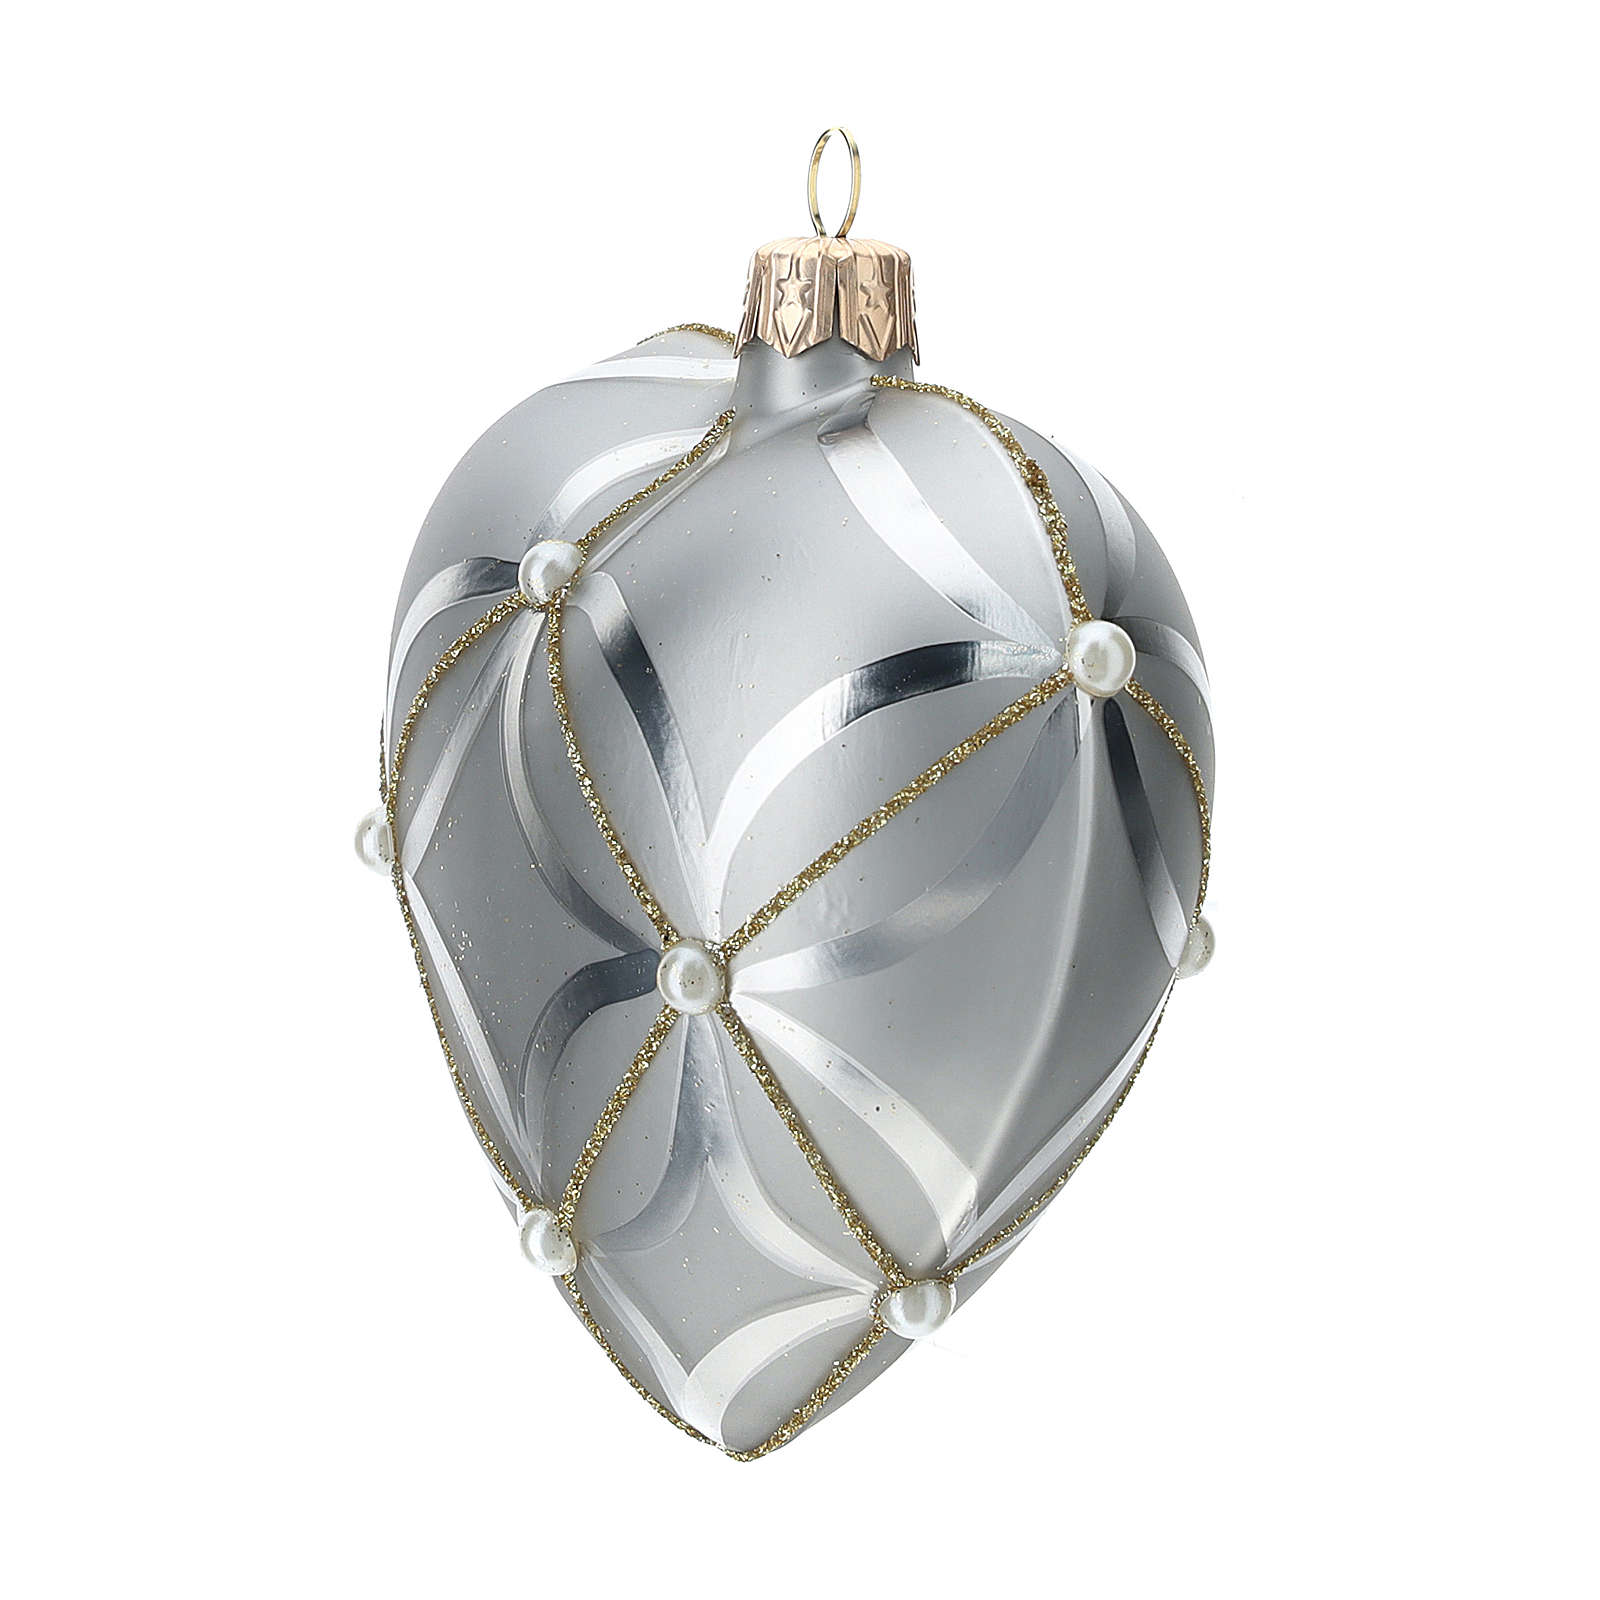 Heart Shaped Bauble in silver blown glass with shiny and opaque decoration 100mm 4